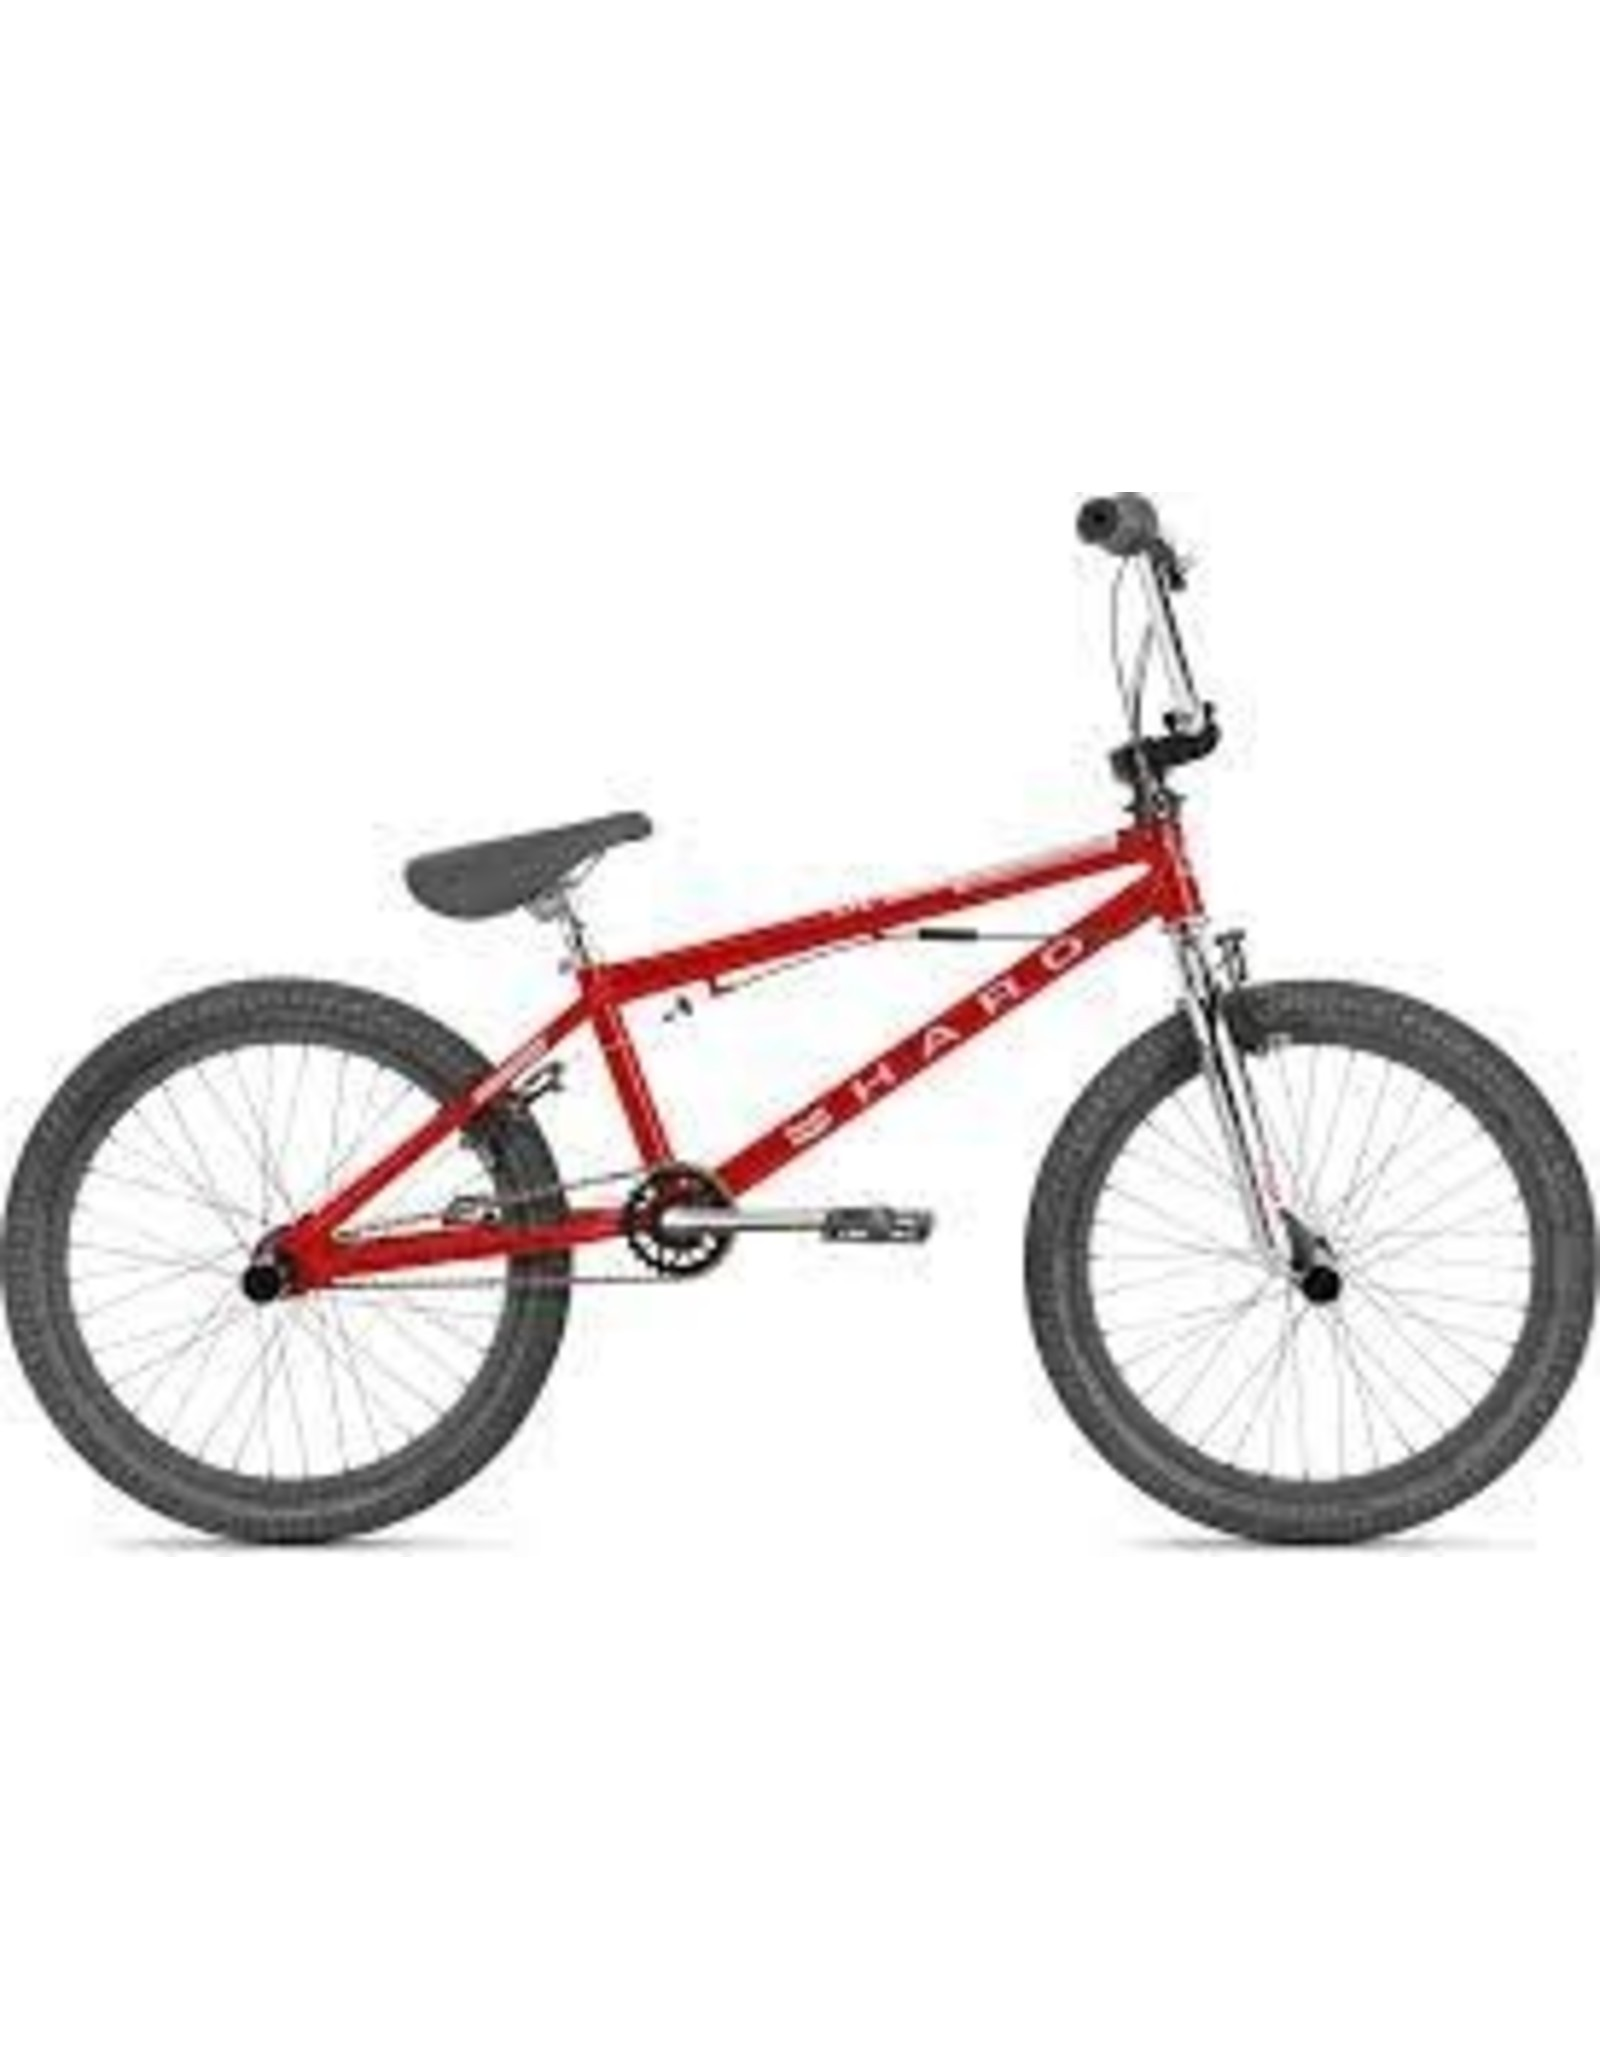 Haro HARO Shredder 20 Pro DLX Red